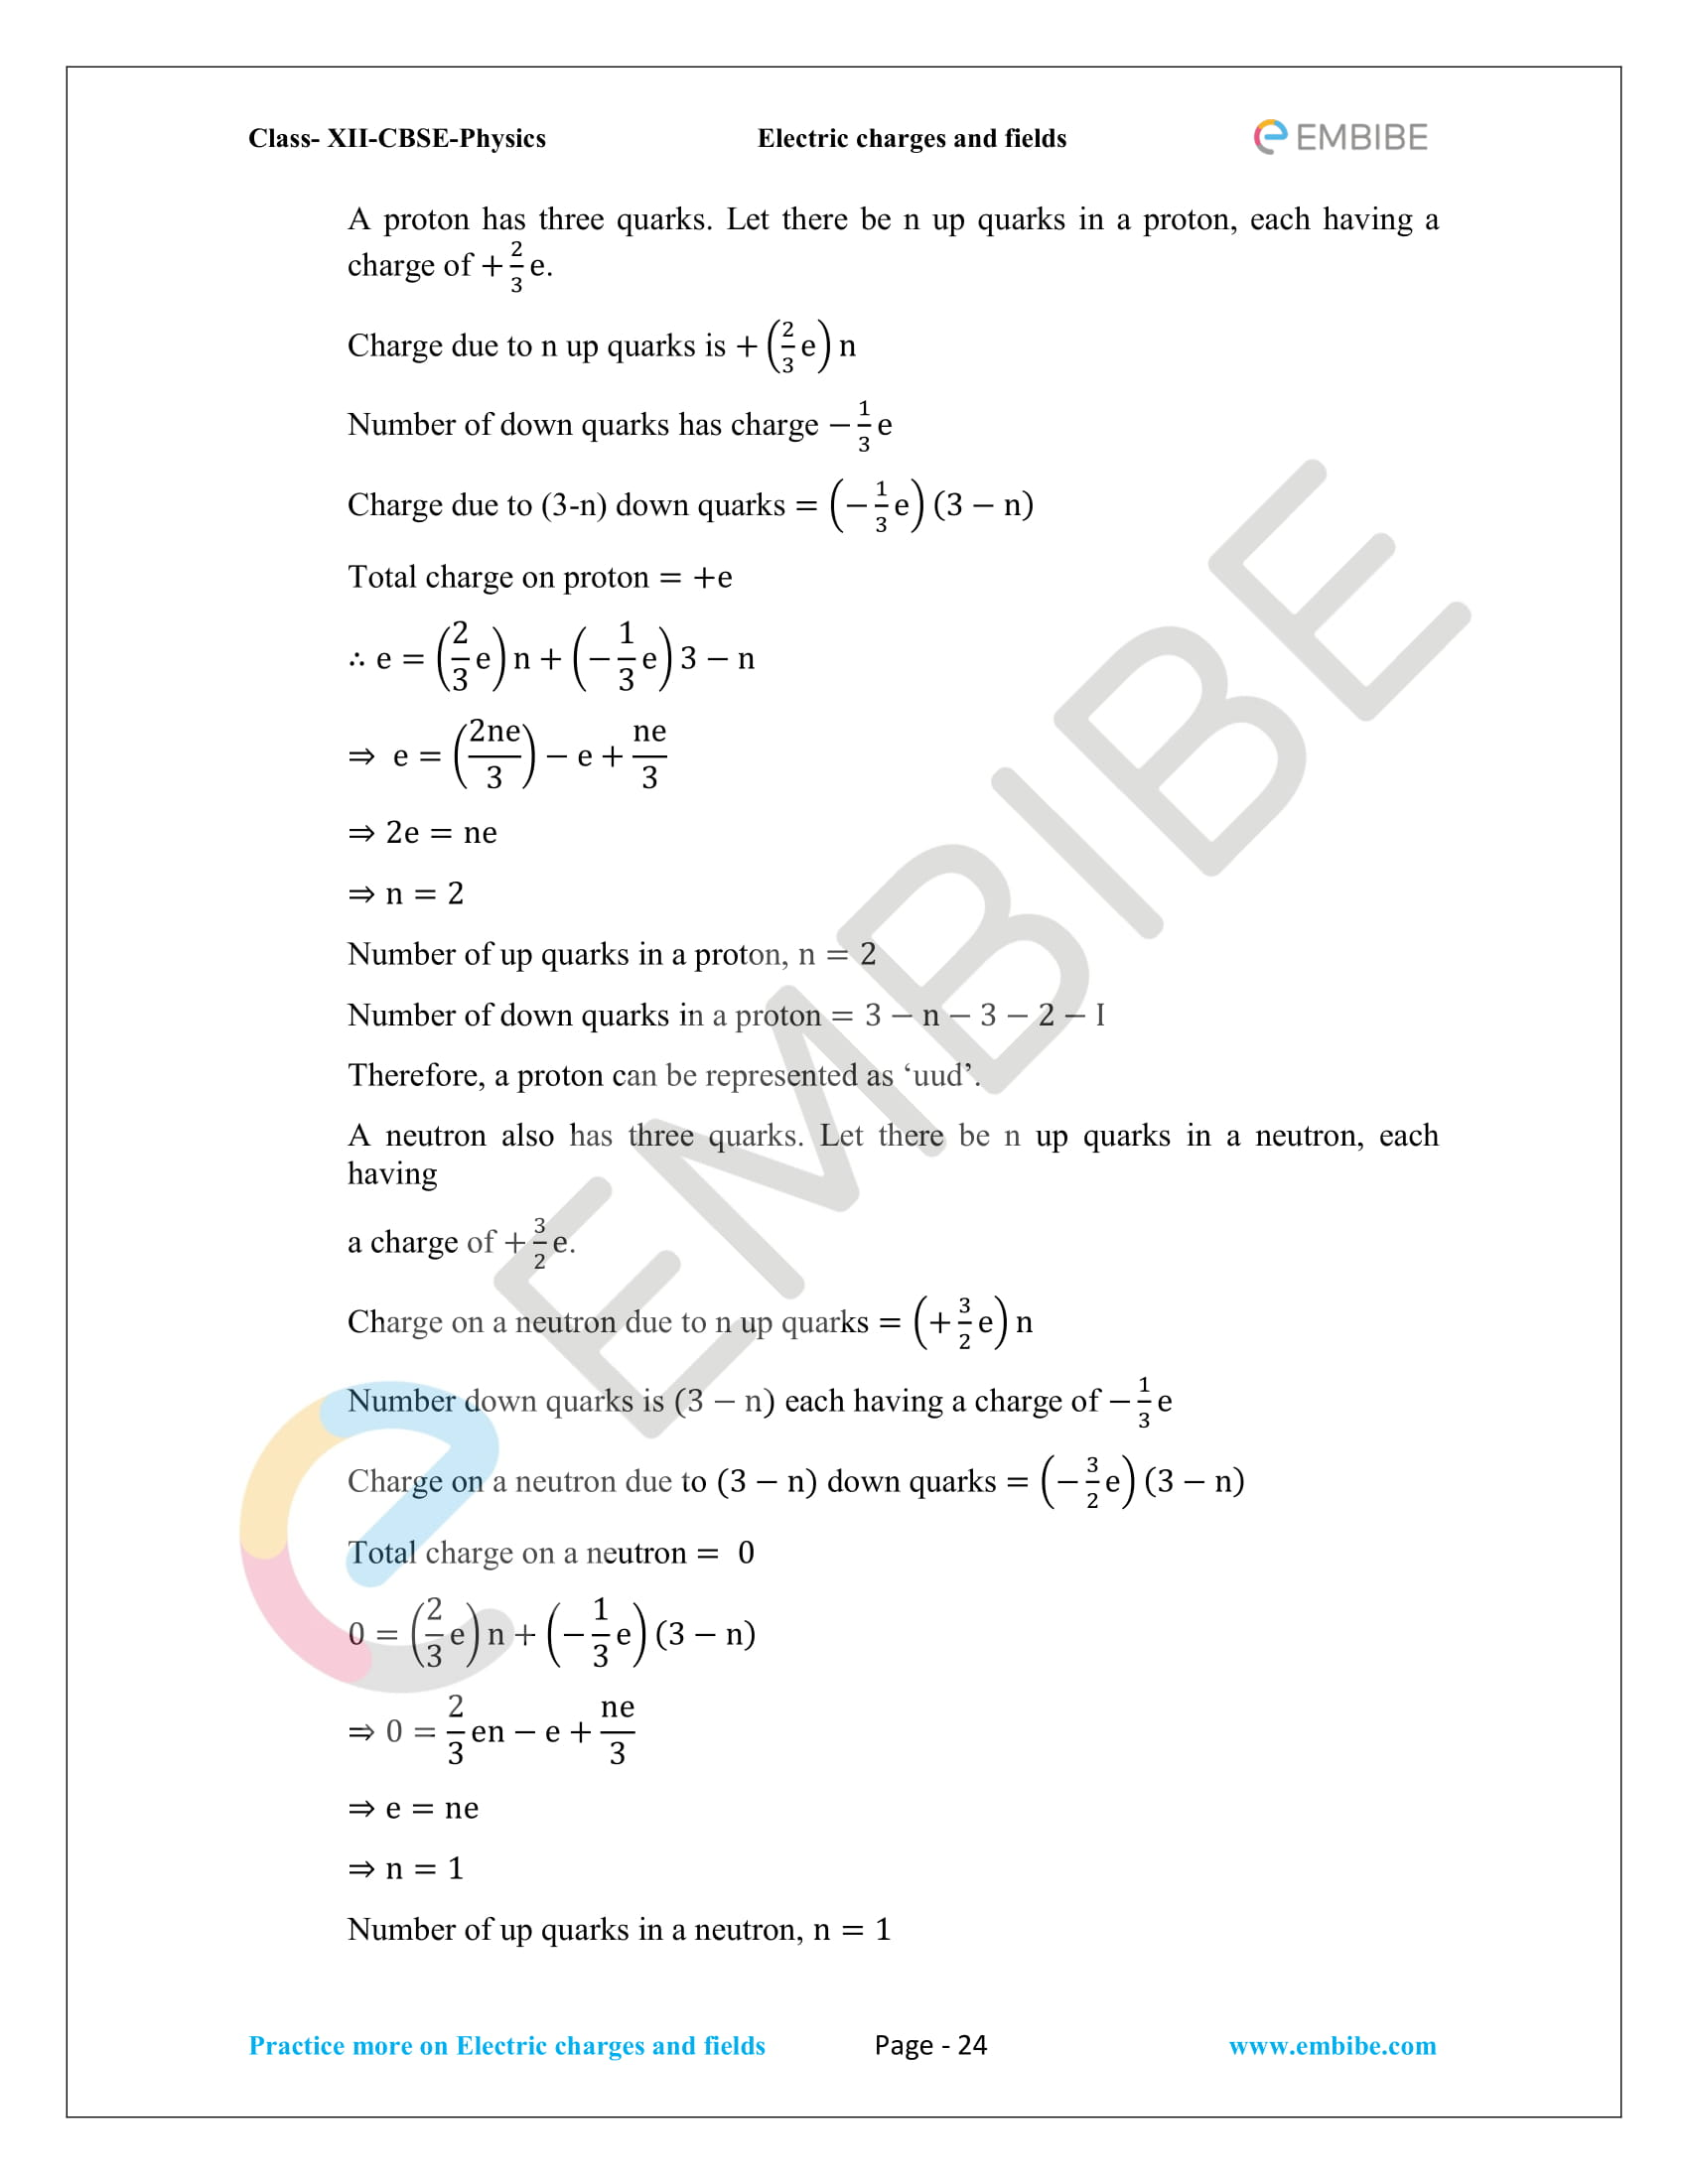 NCERT Solutions for Class 12 Physics Chapter 1 Electric Charges and Field embibe-24